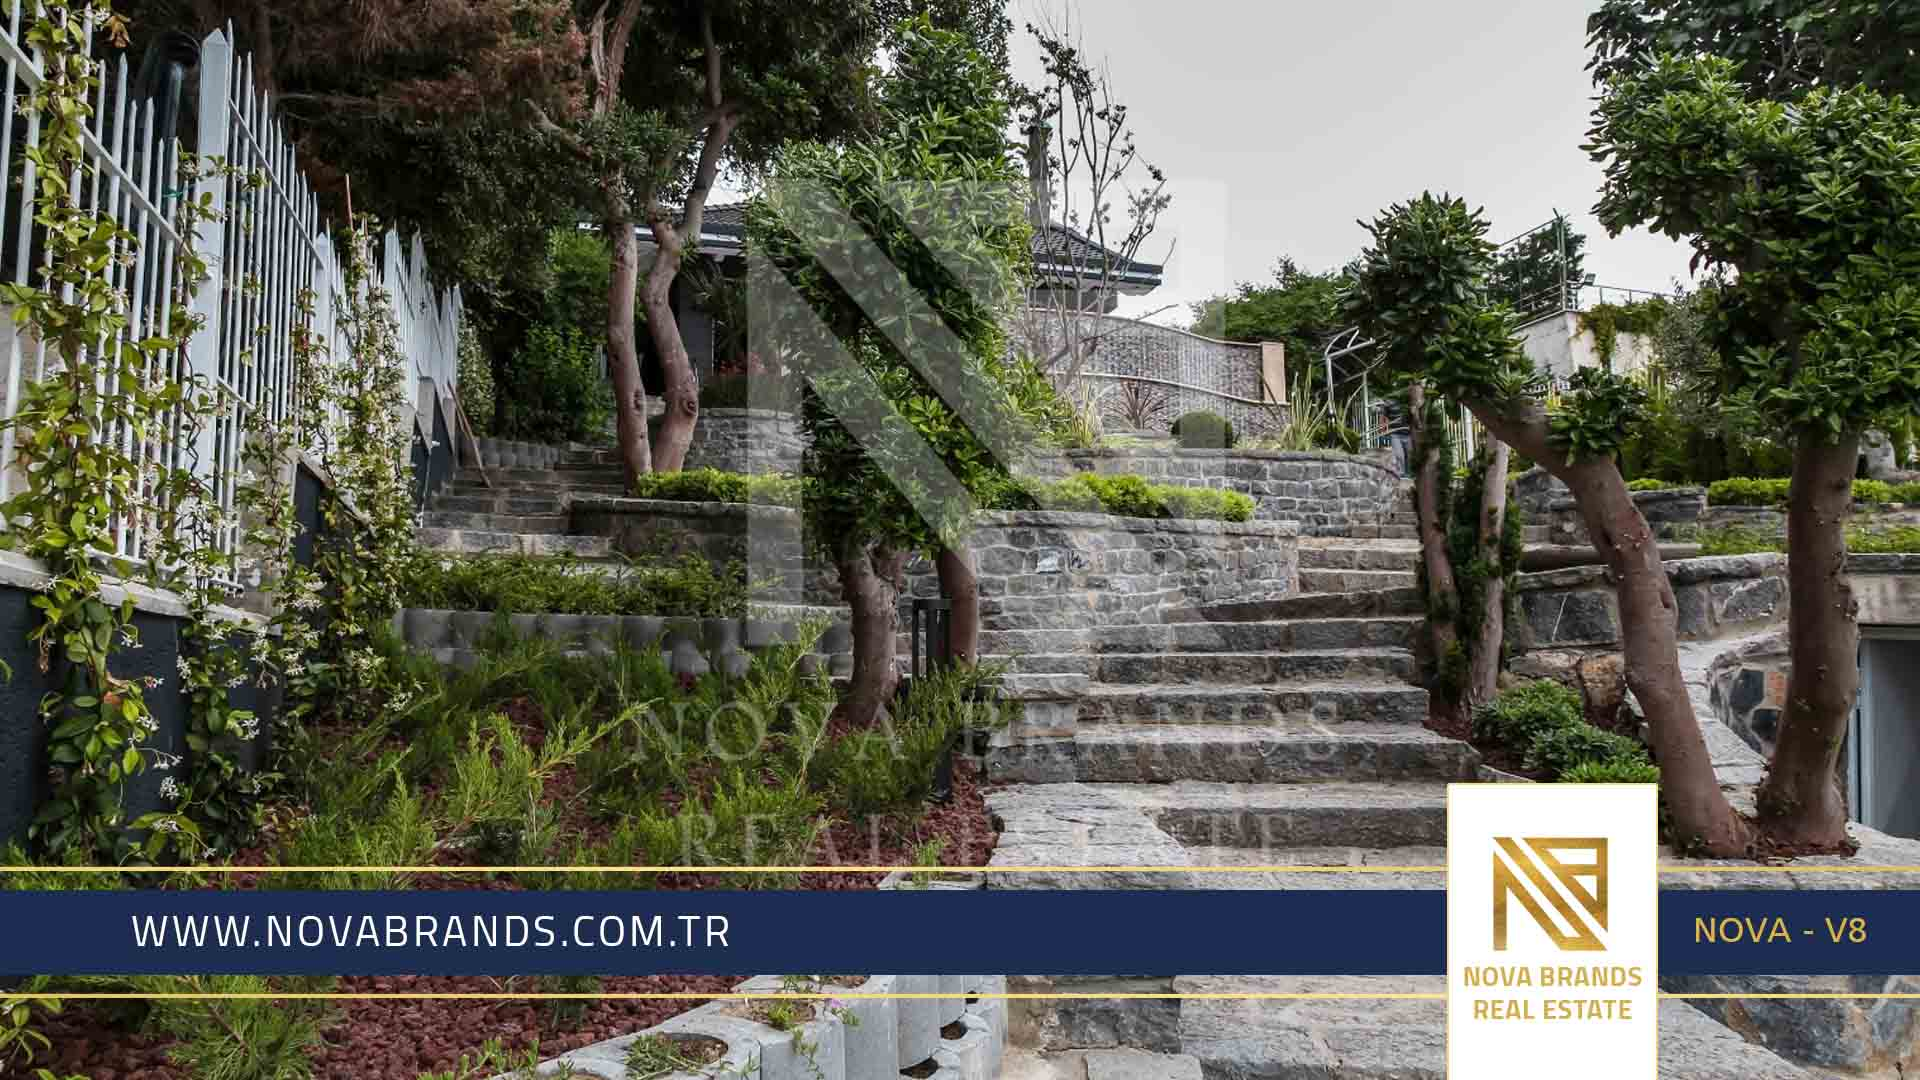 Villa for sale in Istanbul, directly on the sea, equipped with the latest advanced technology NOVA - V 8